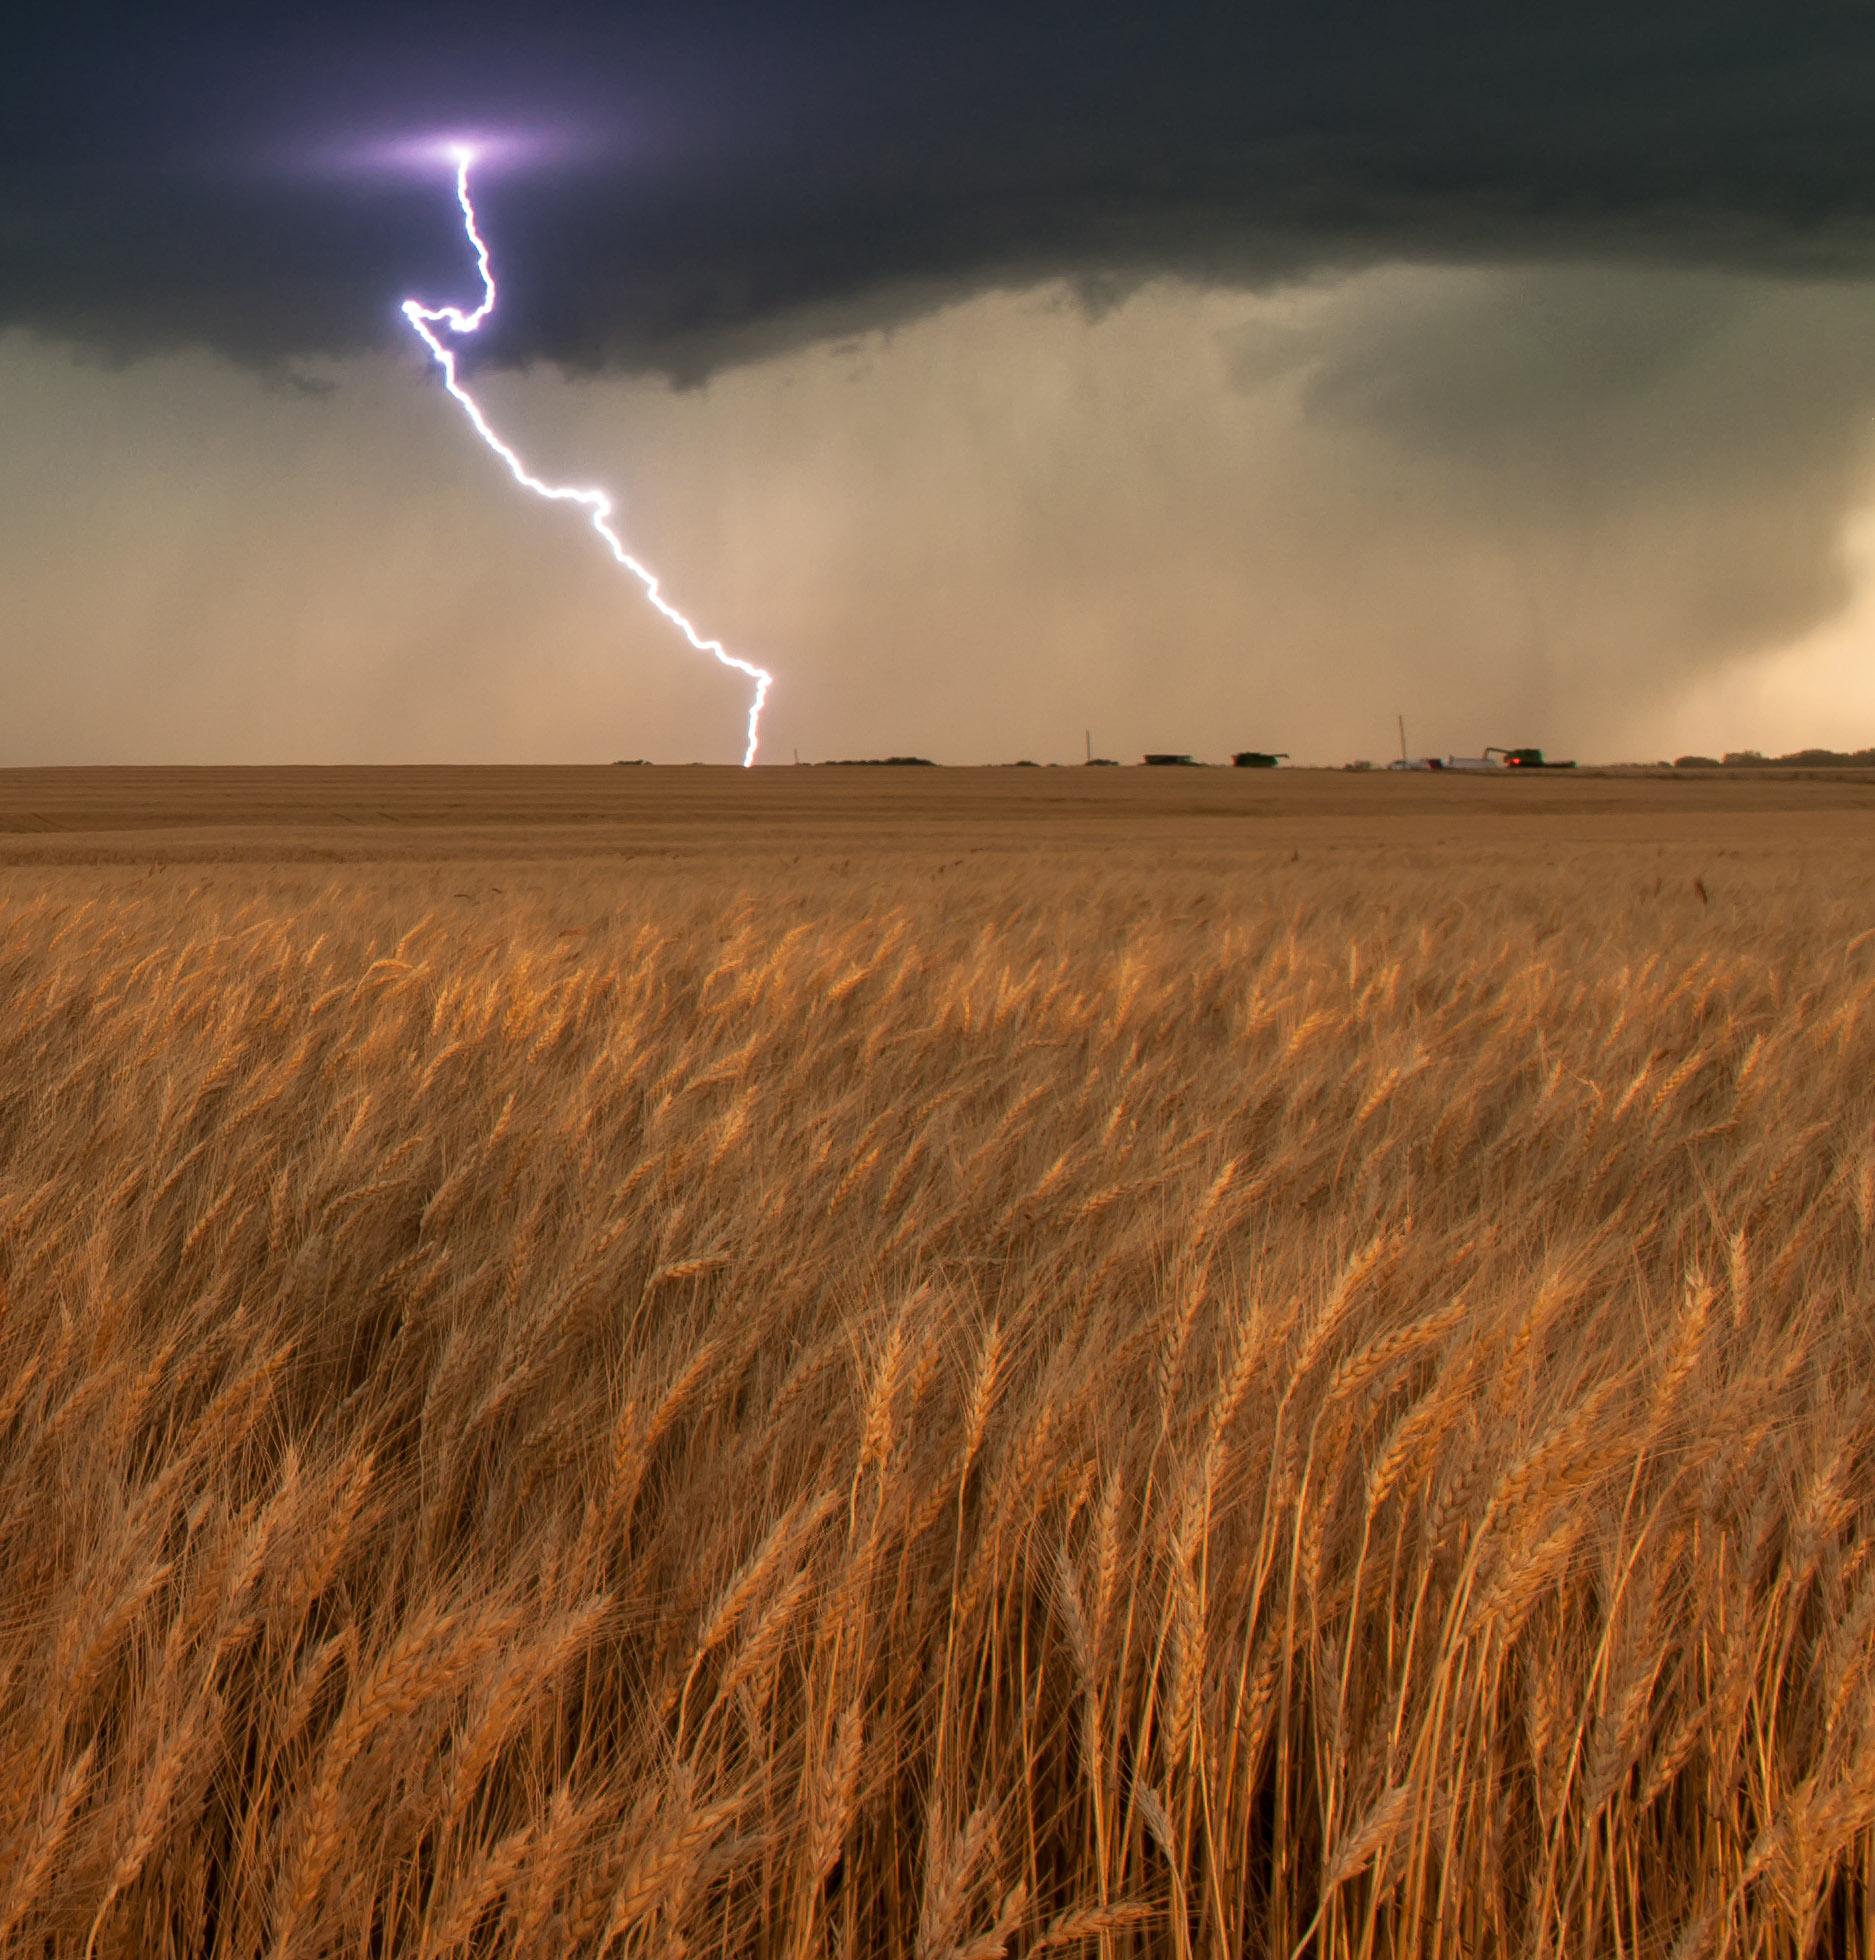 Lightning striking wheat field - rural western Oklahoma